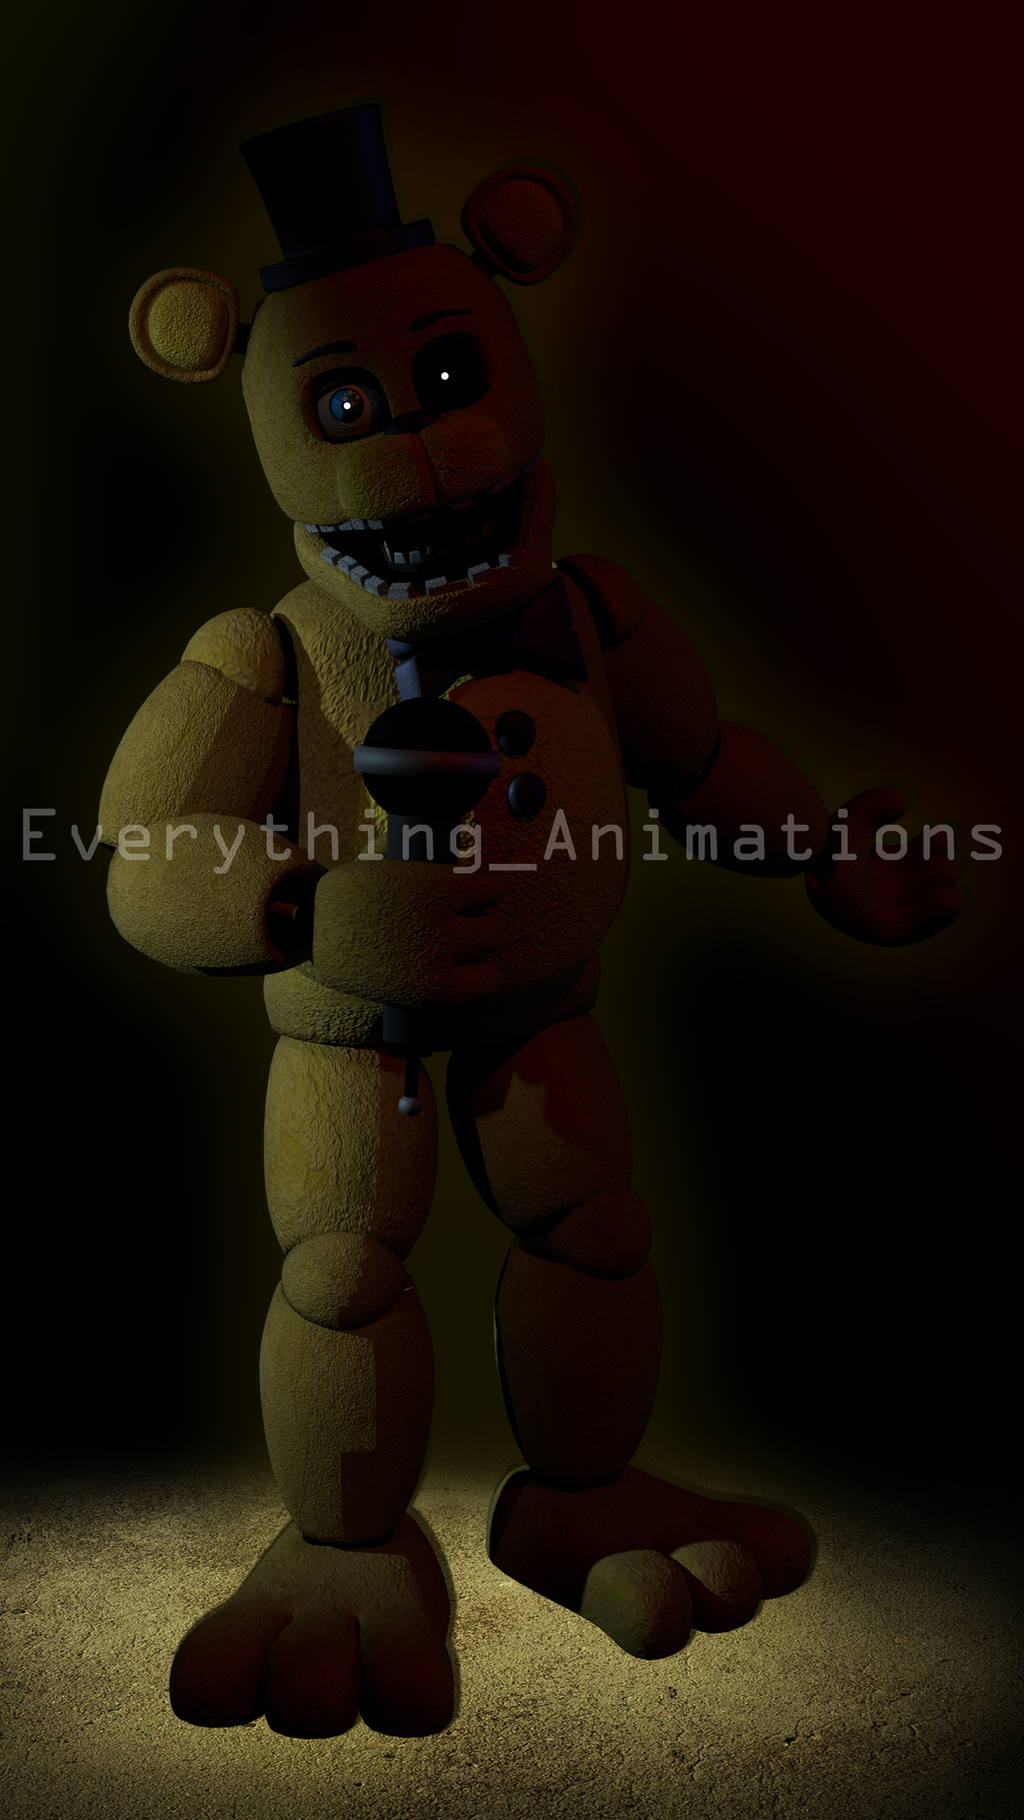 Fnaf 2 Golden Freddy Wallpaper